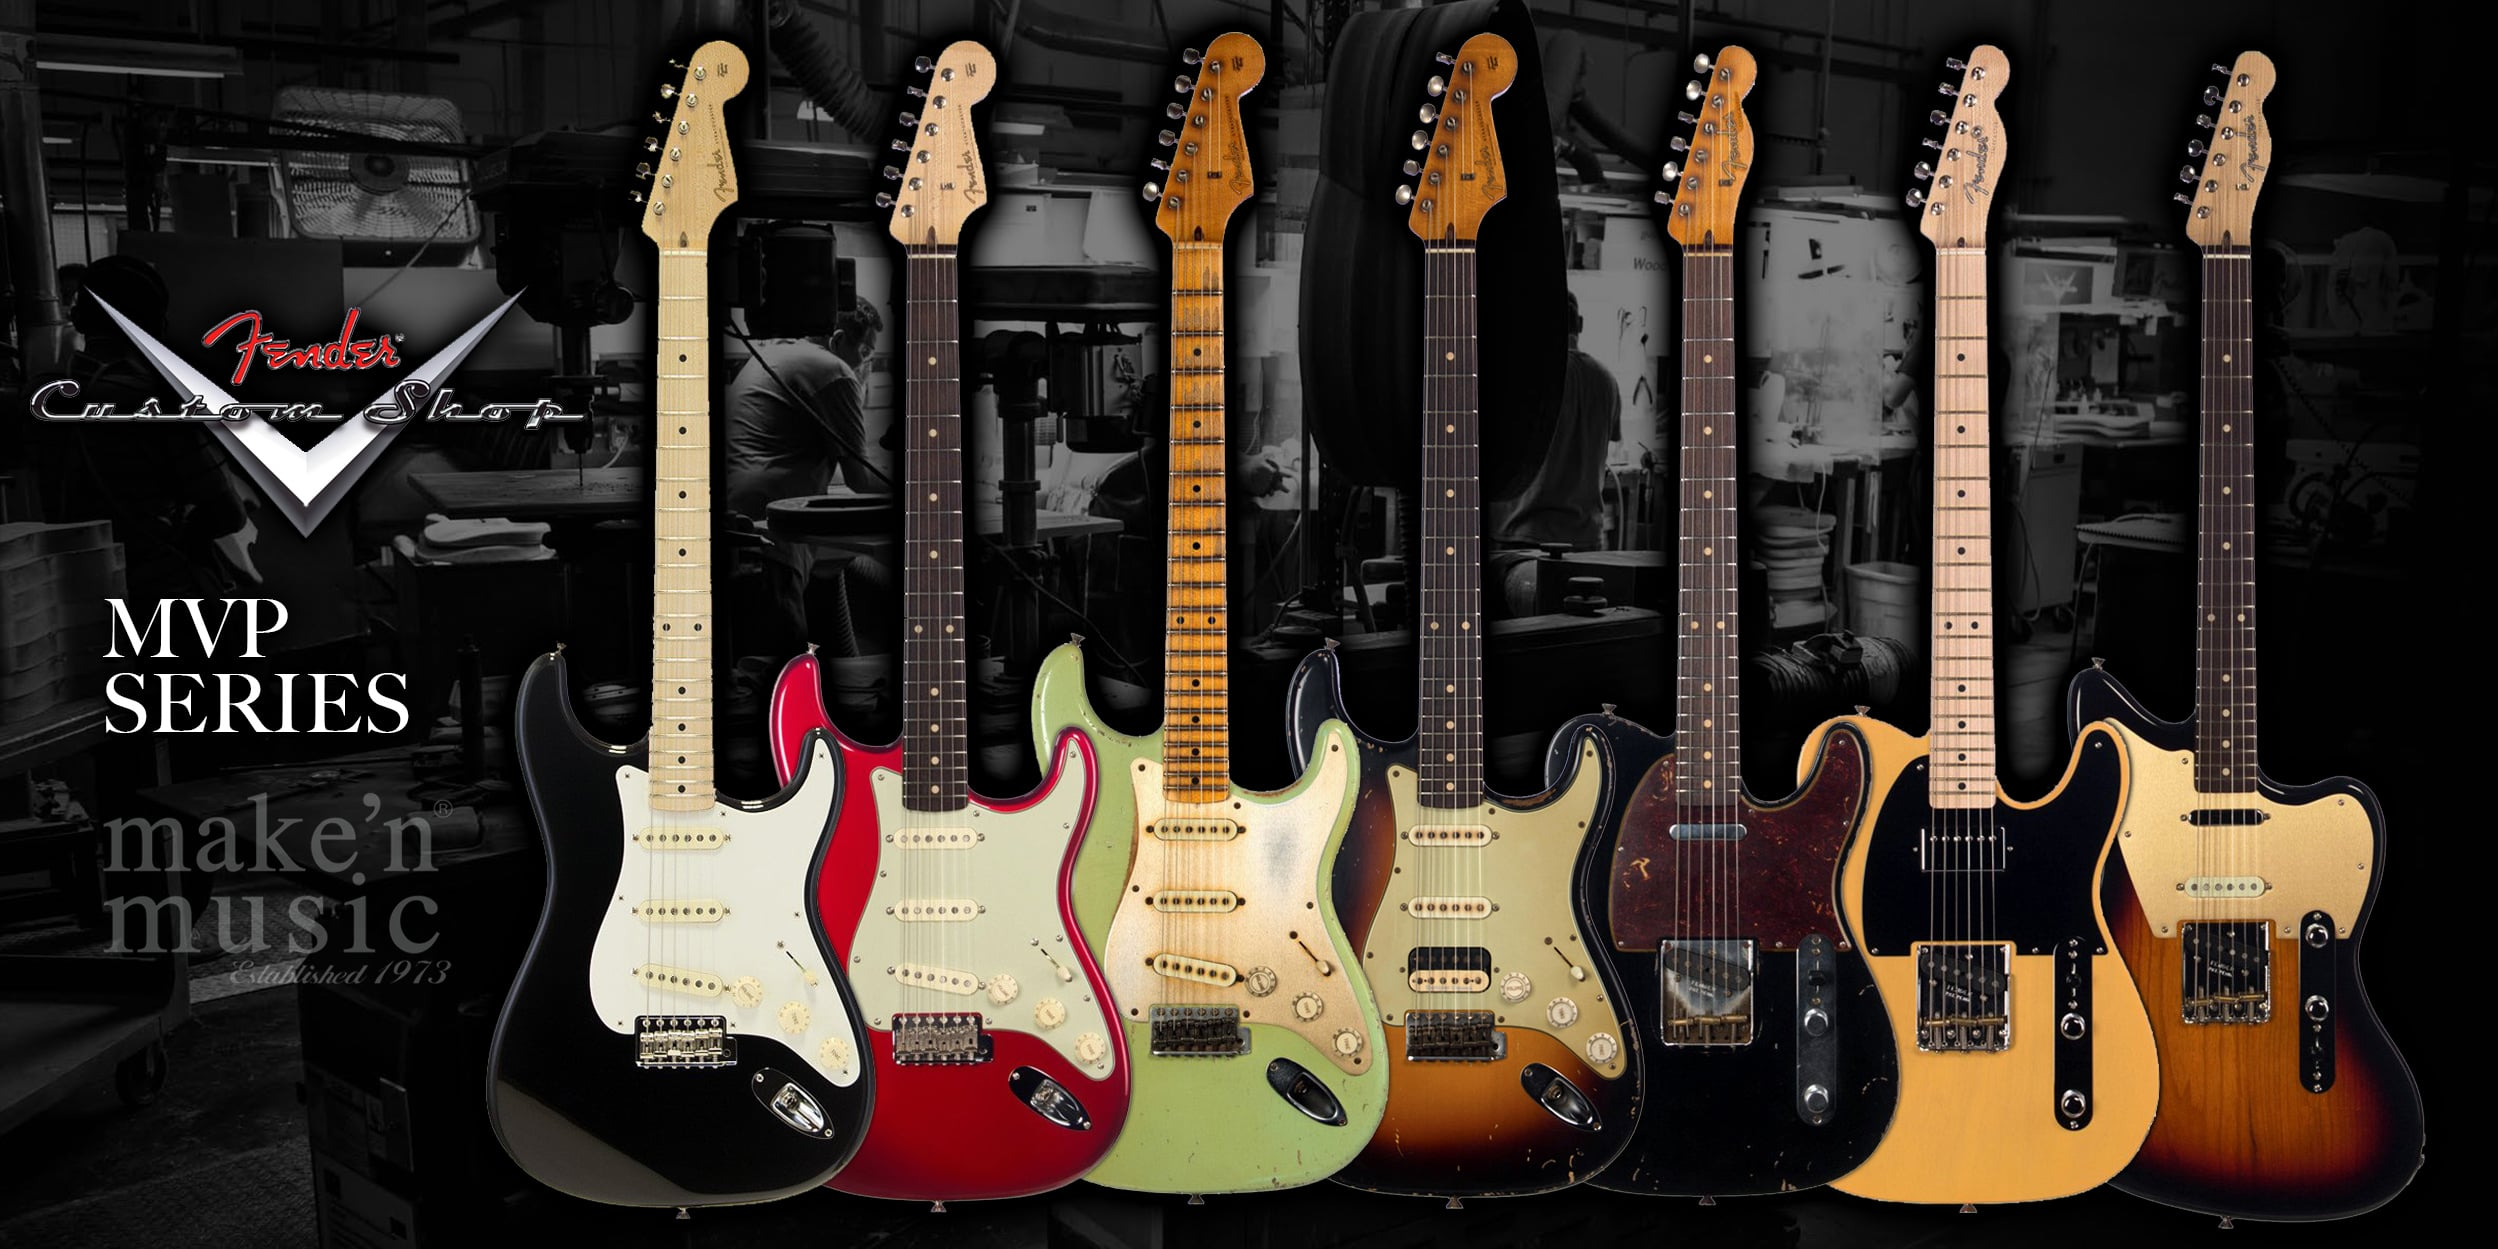 Fender Custom Shop MVP Series